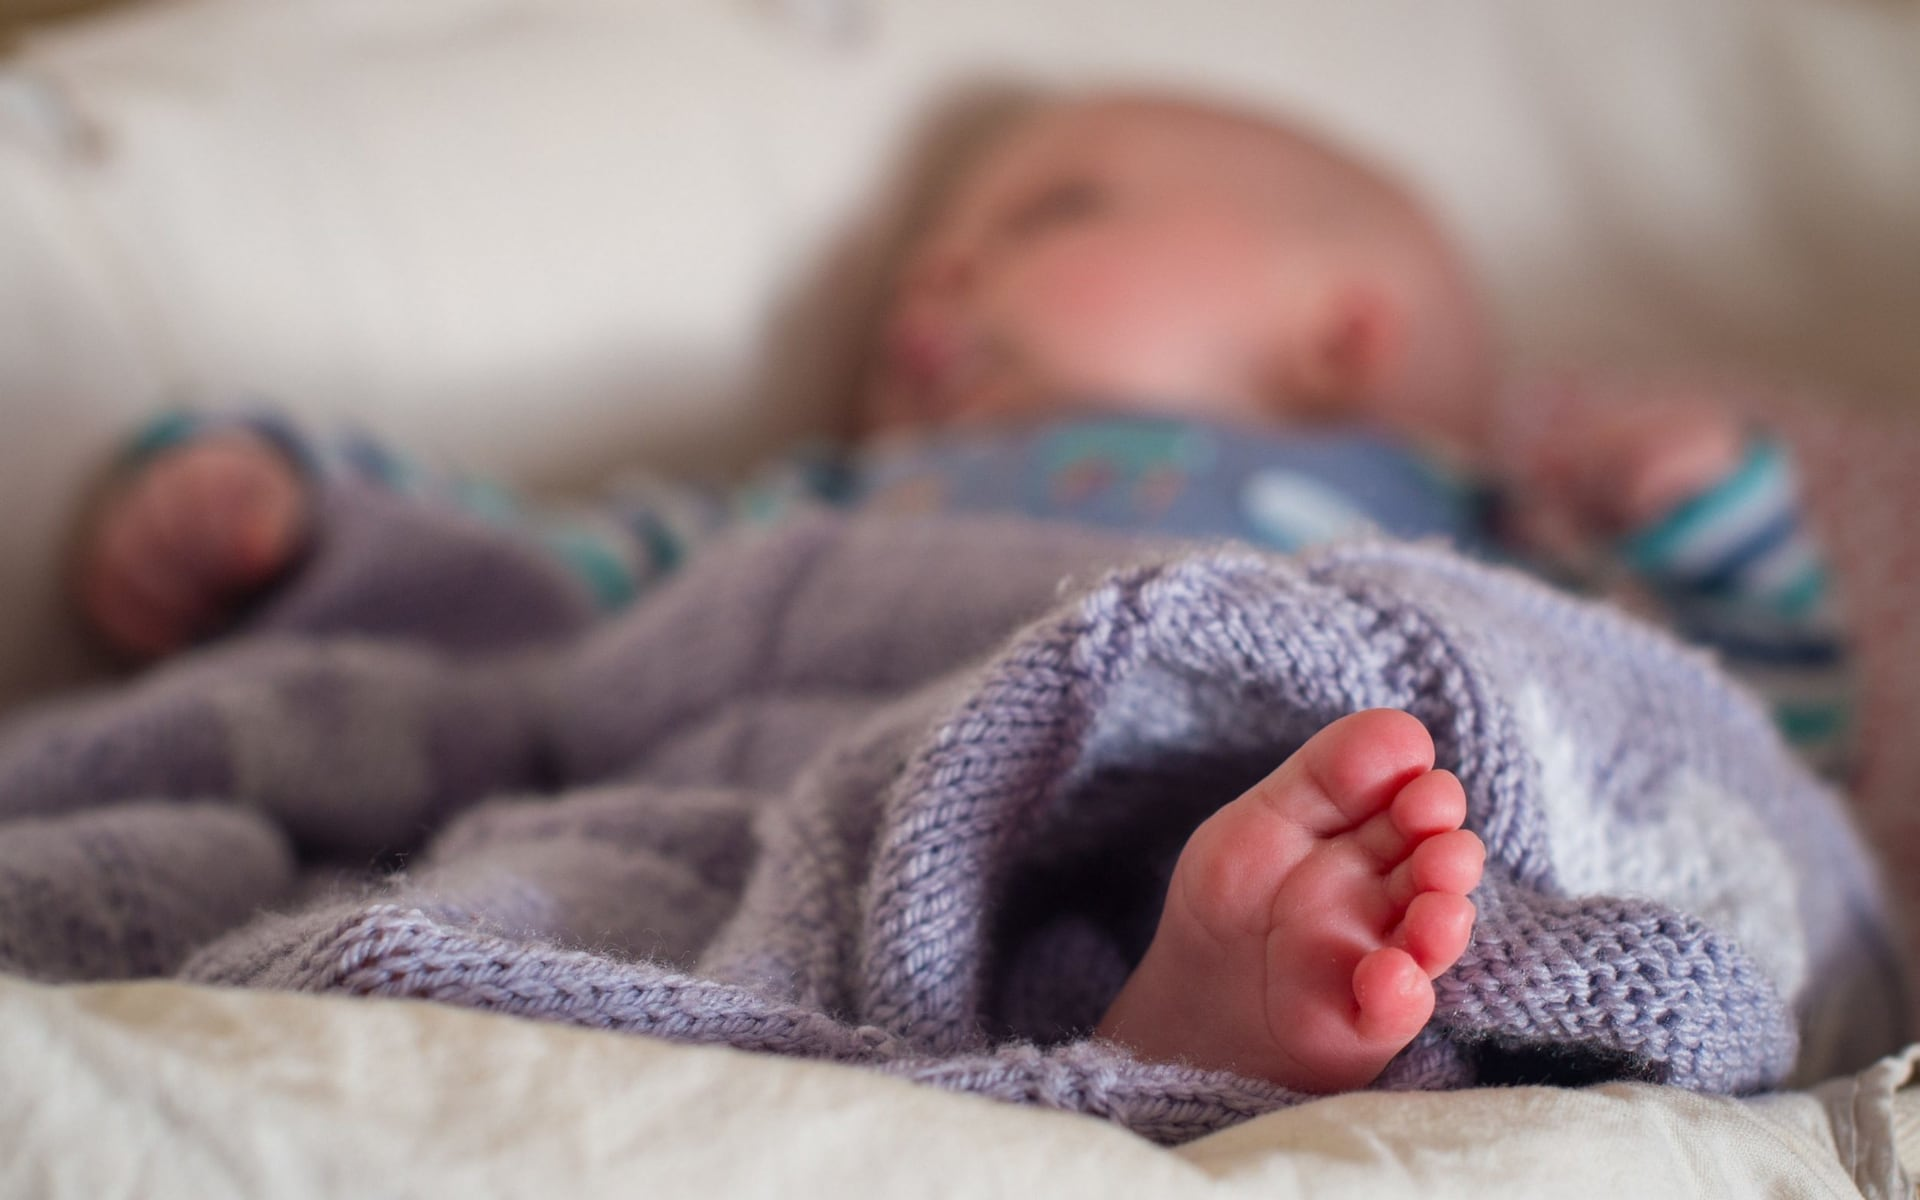 Spain's first 'stolen babies' case comes to trial